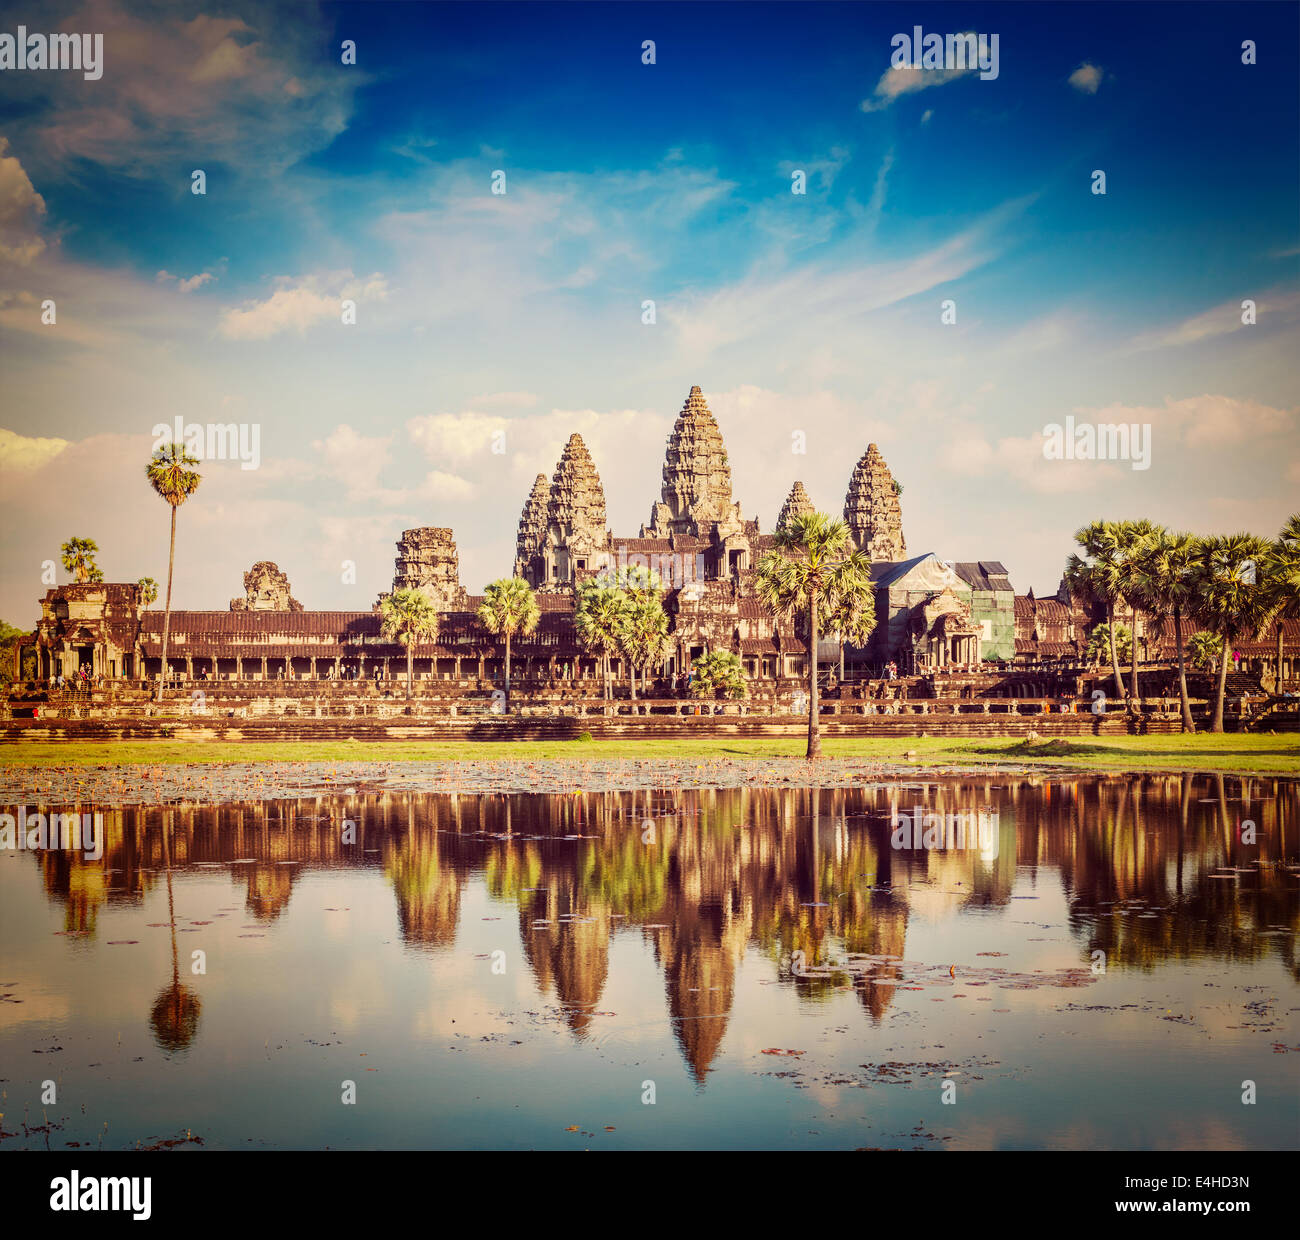 Vintage retro effect filtered hipster style travel image of Cambodia landmark Angkor Wat with reflection in water - Stock Image